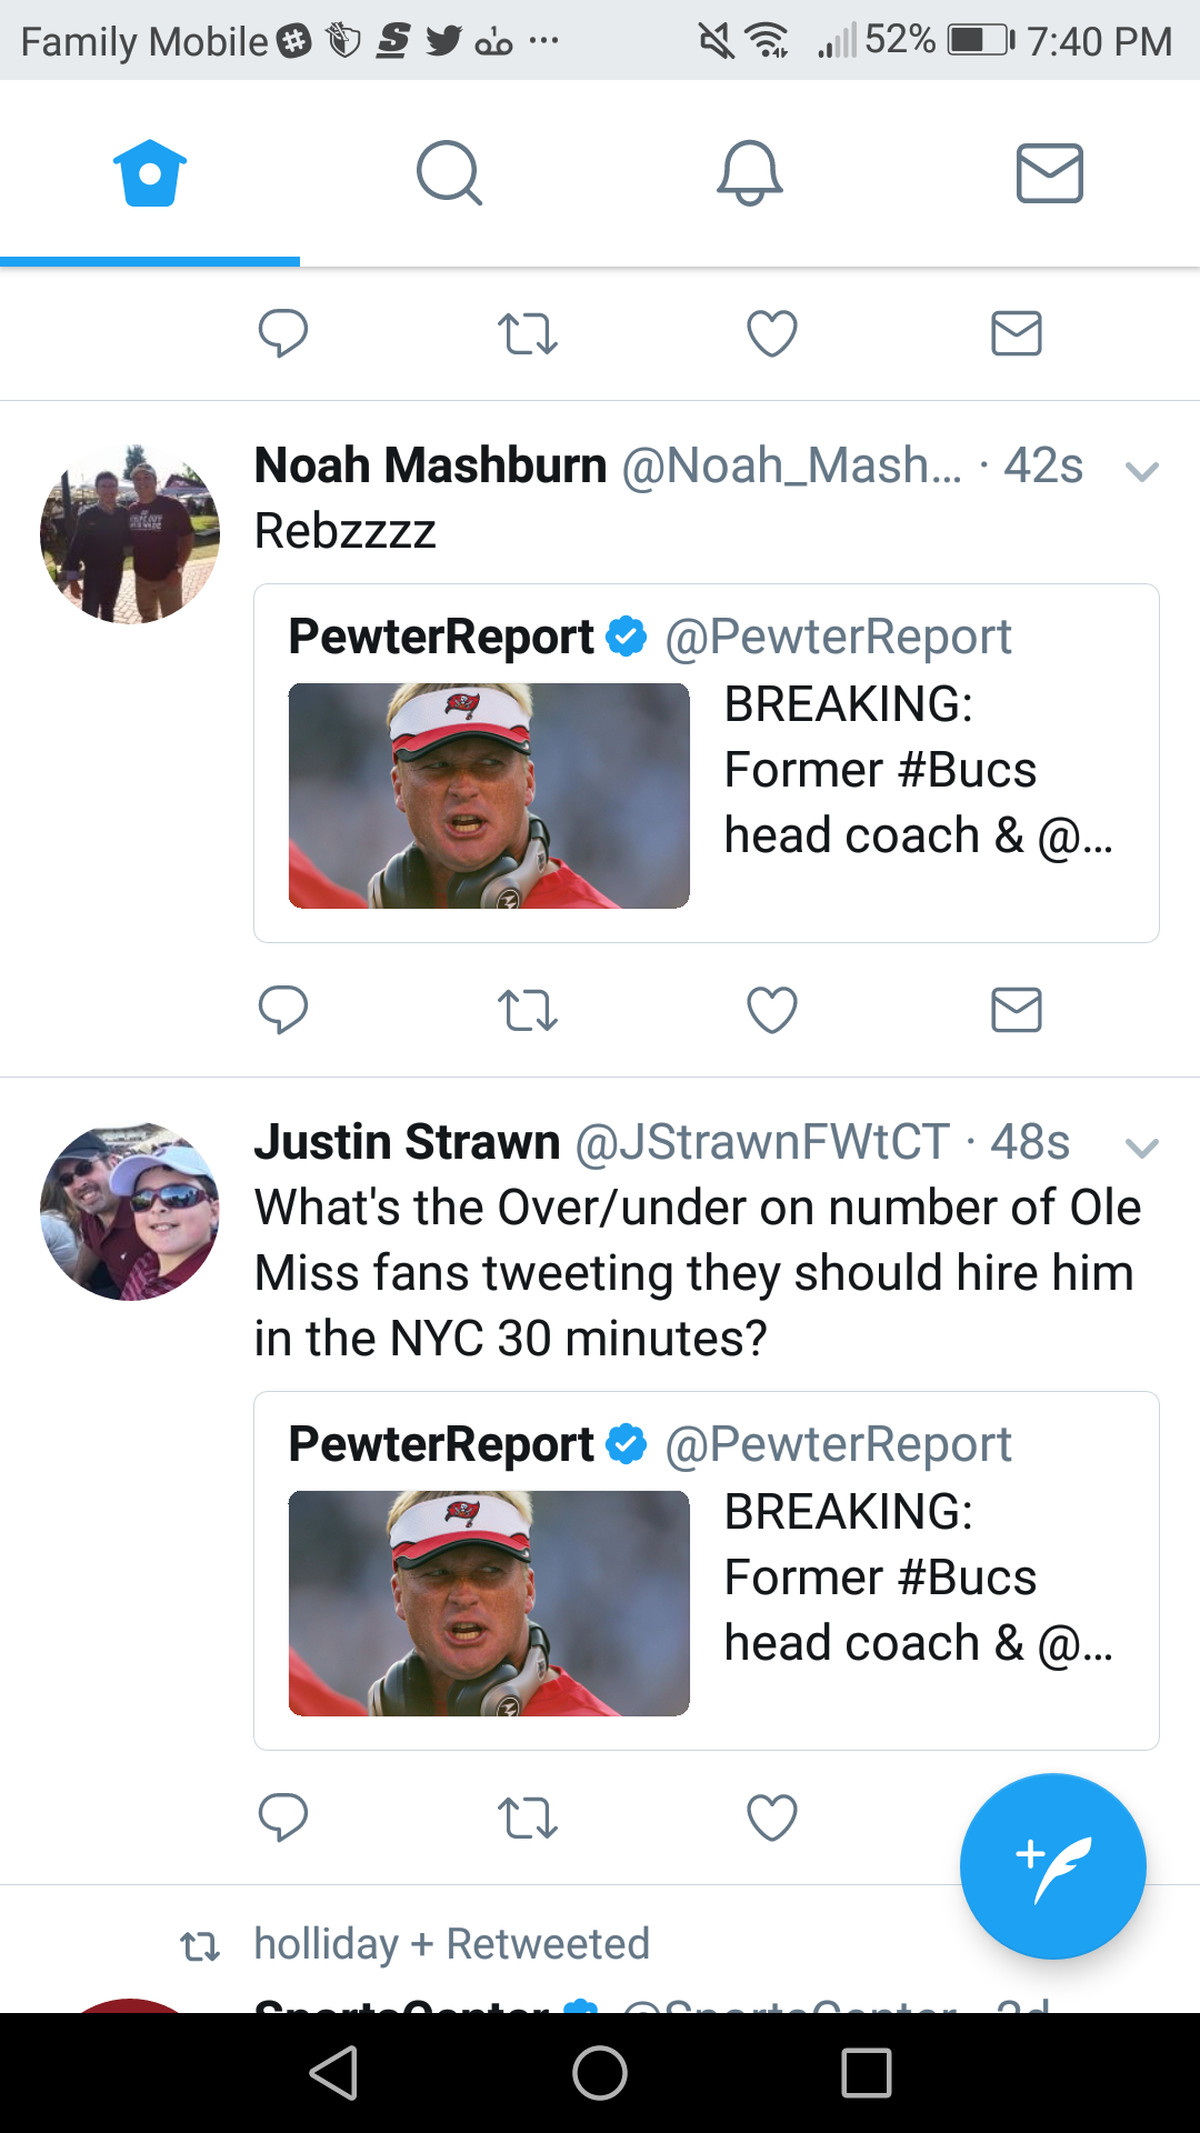 Stupendous How Itwas Going To Be Obvious That Jon Gruden Would Be Tied To We Tried To Troll Ole Miss Fans Accidentally Trolled Sports Tweeted Just A Few Seconds Apart About Latest Grumors dpreview Obvious Troll Is Obvious